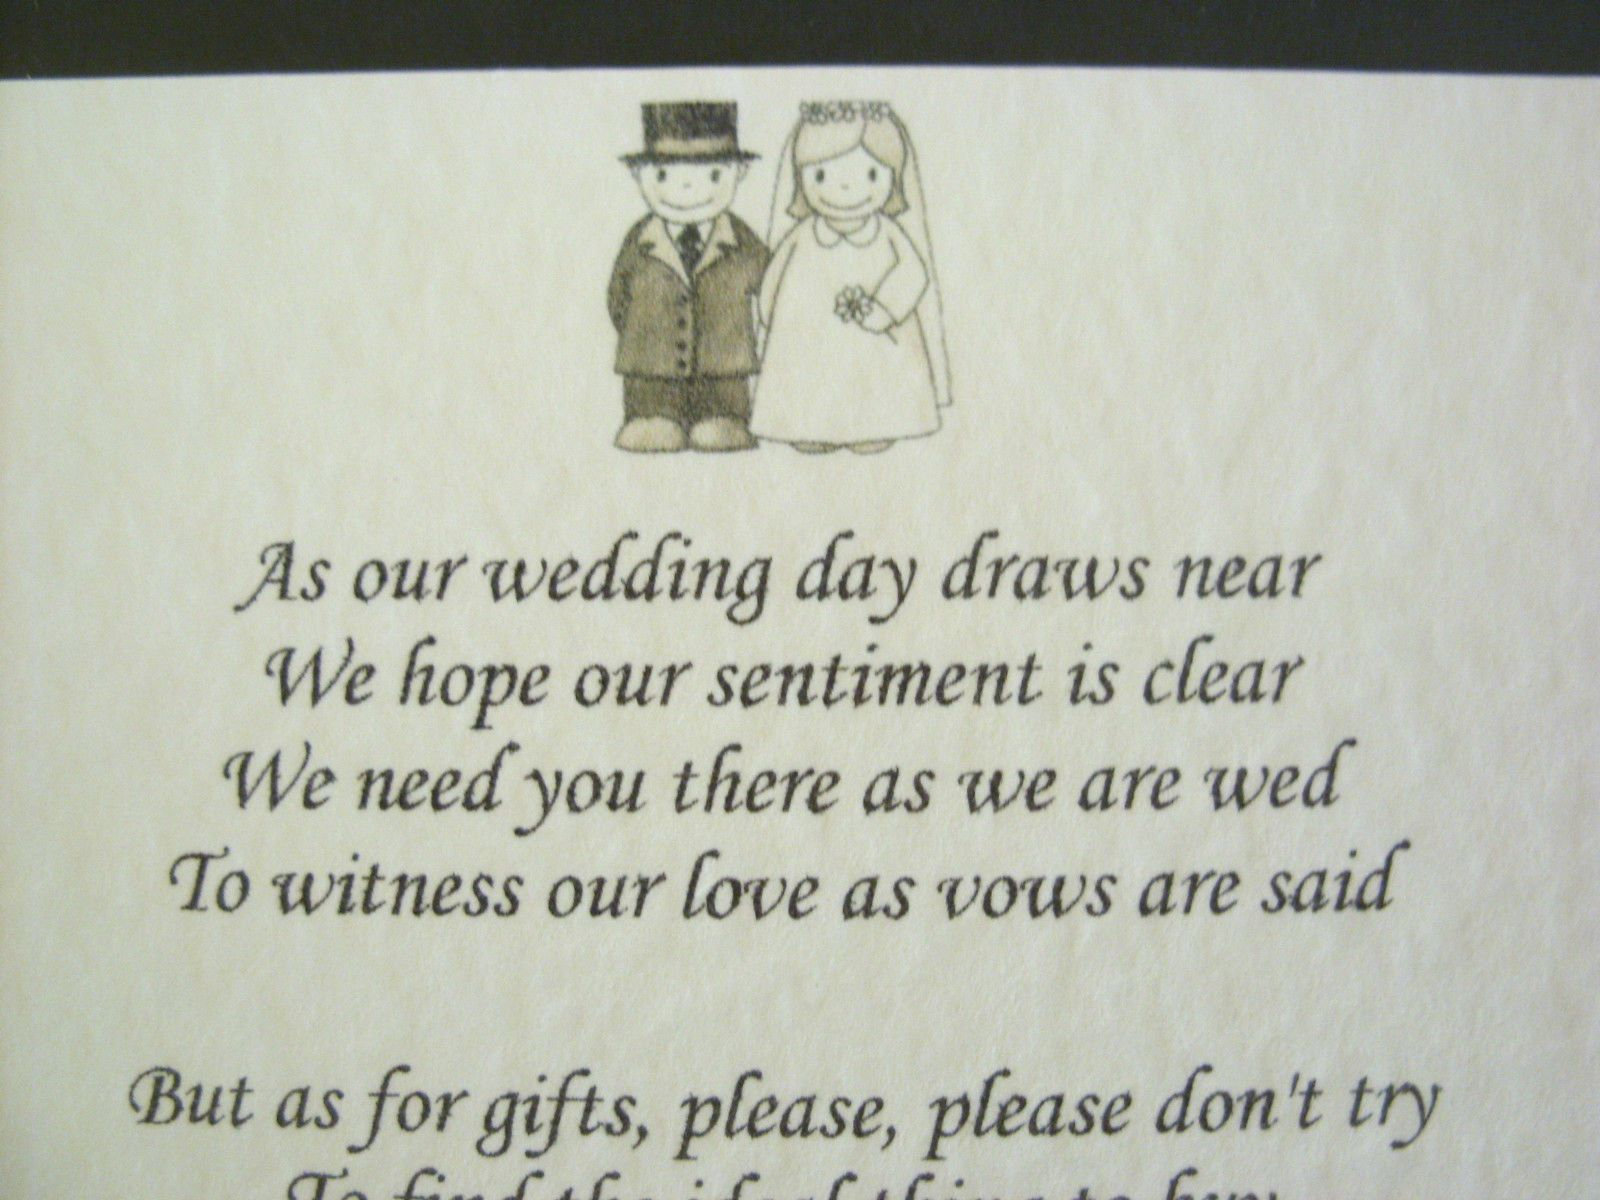 Funny Wedding Invite Poems: Details About 20 Wedding Poems Asking For Money Gifts Not